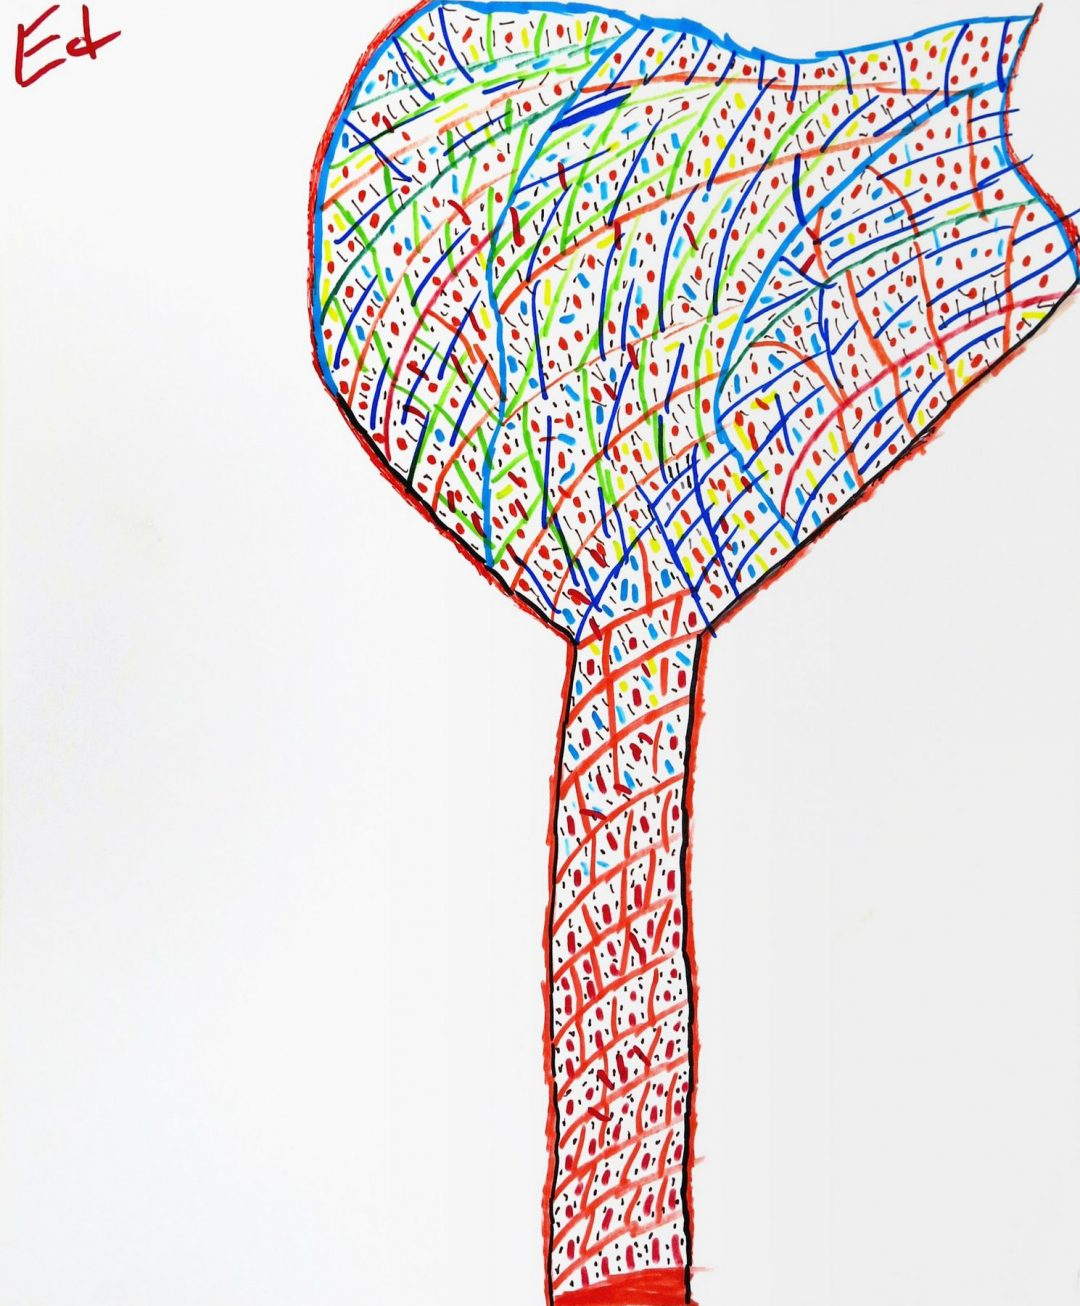 Marker Drawing by Ed, 14x17, 2019